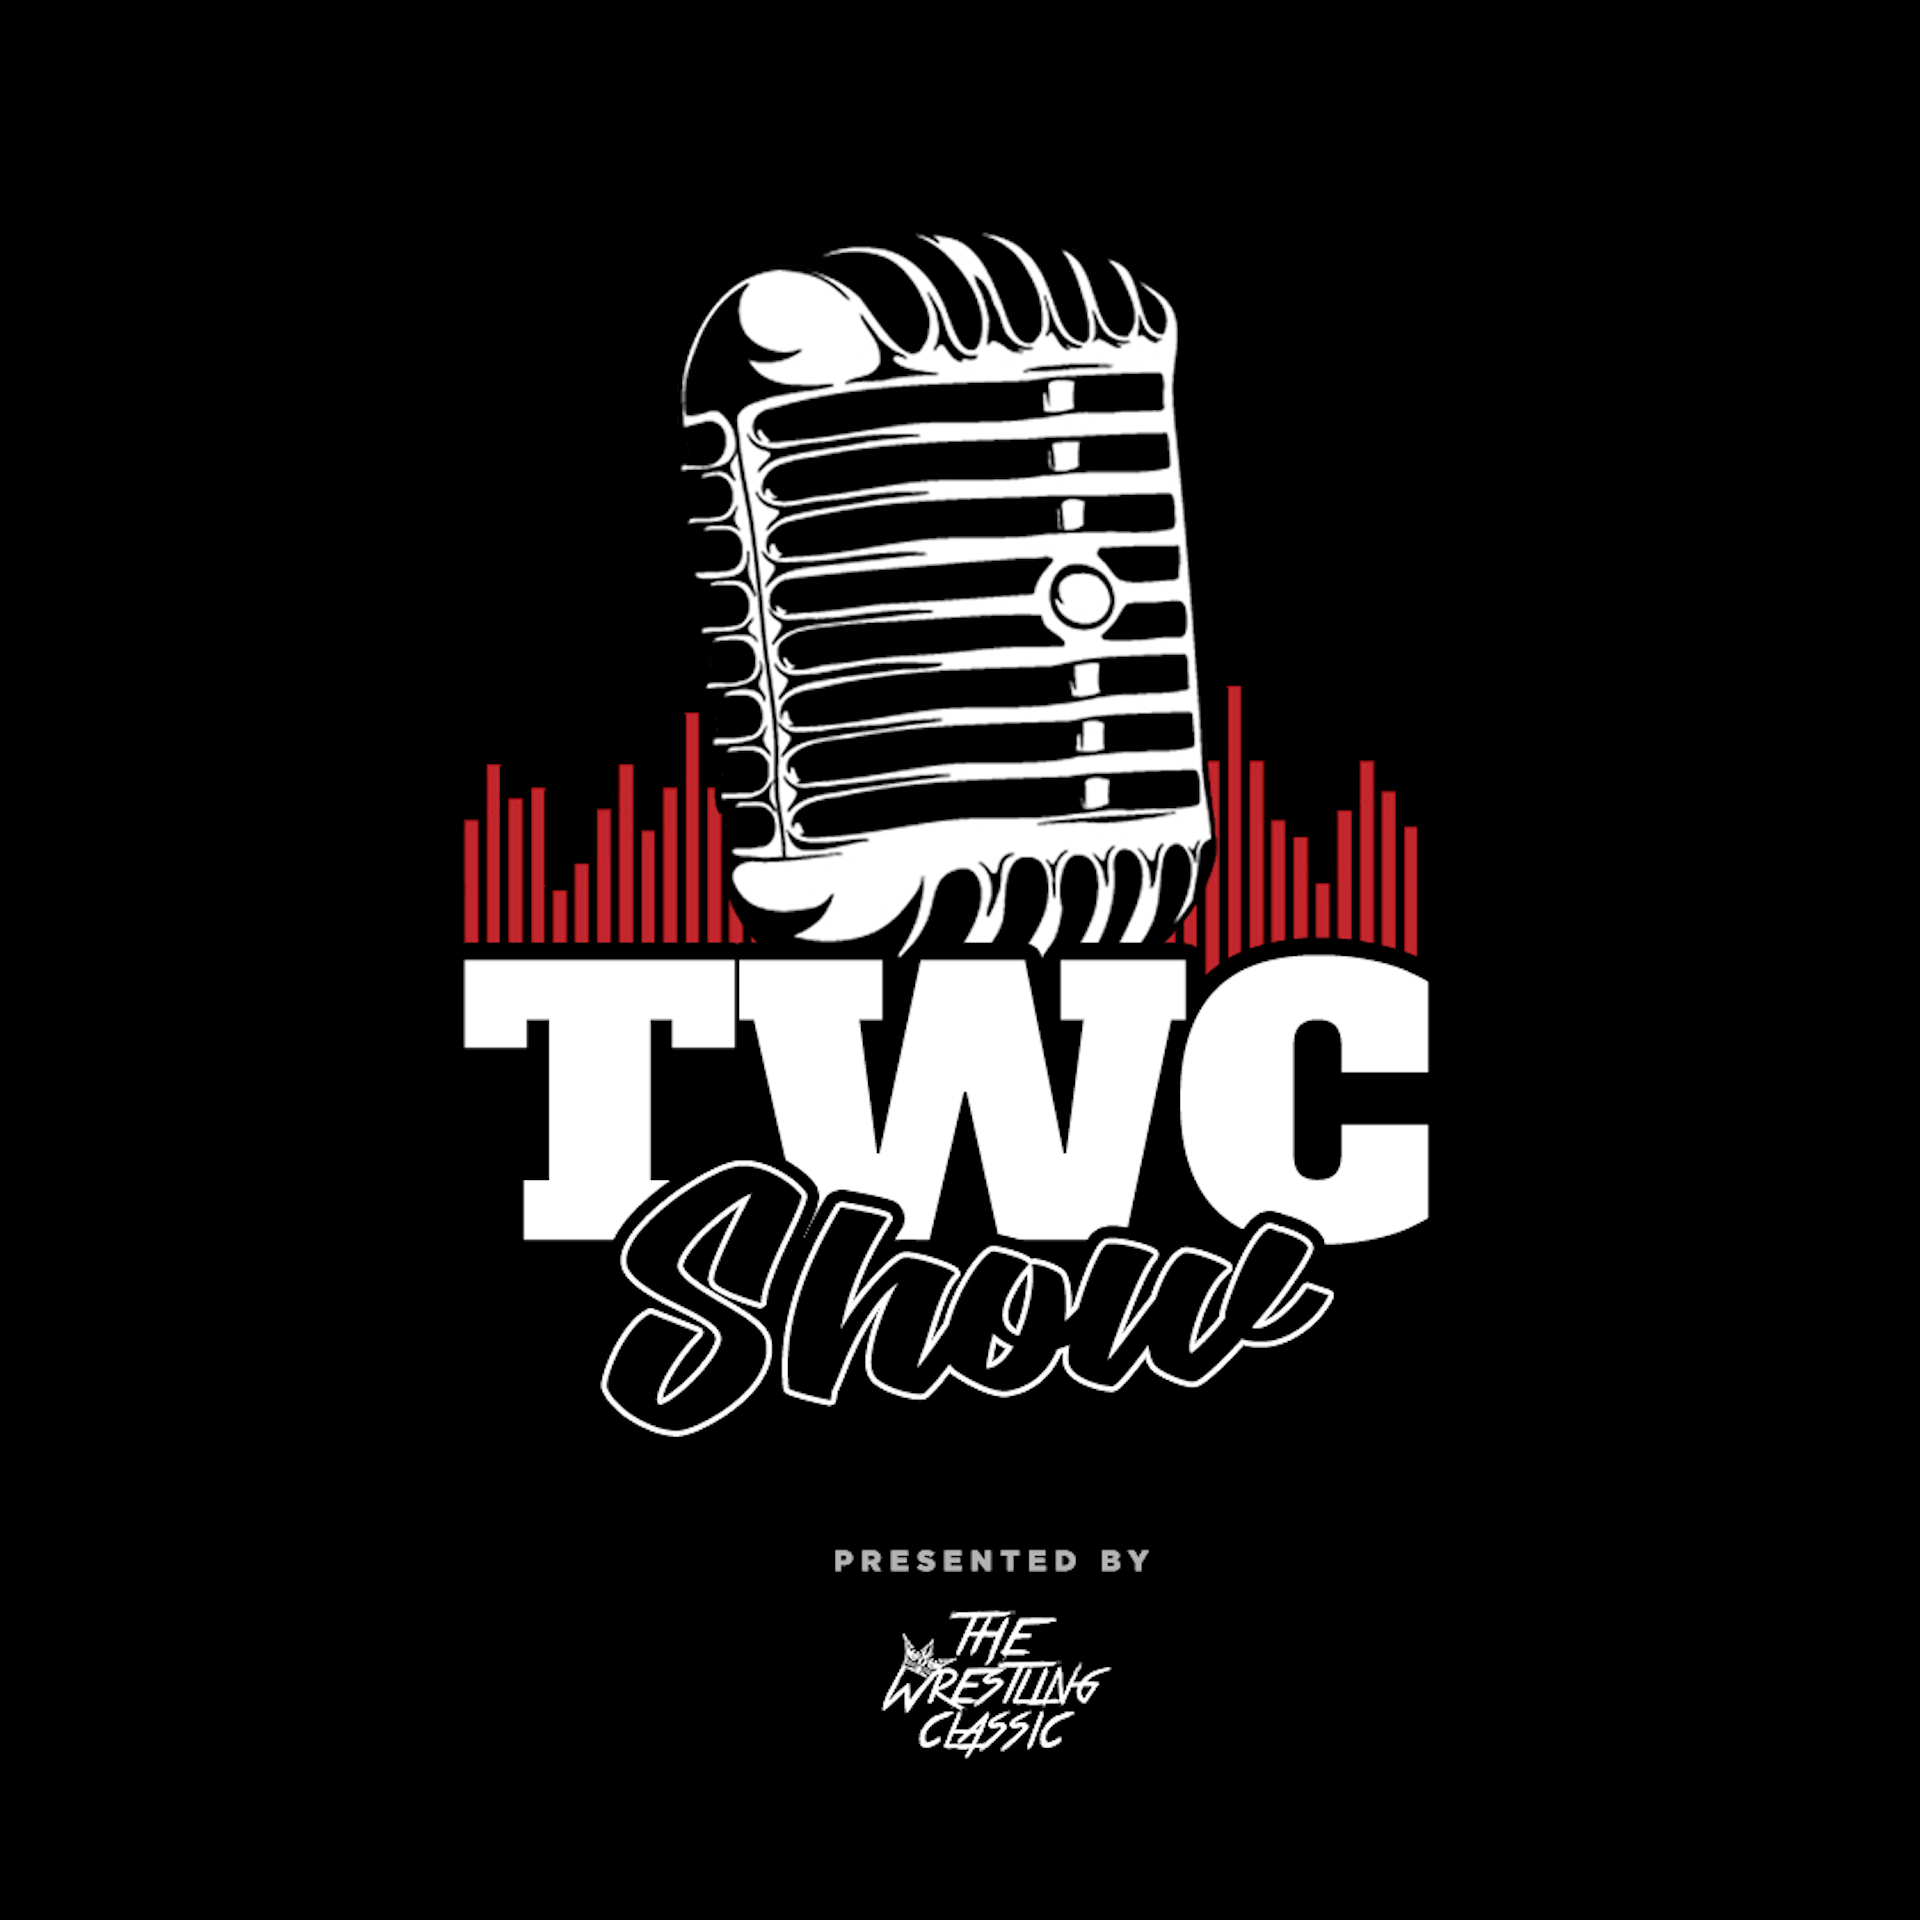 TWC Show Episode 24 – The Infamous Wedding of the Decade w/ AJ